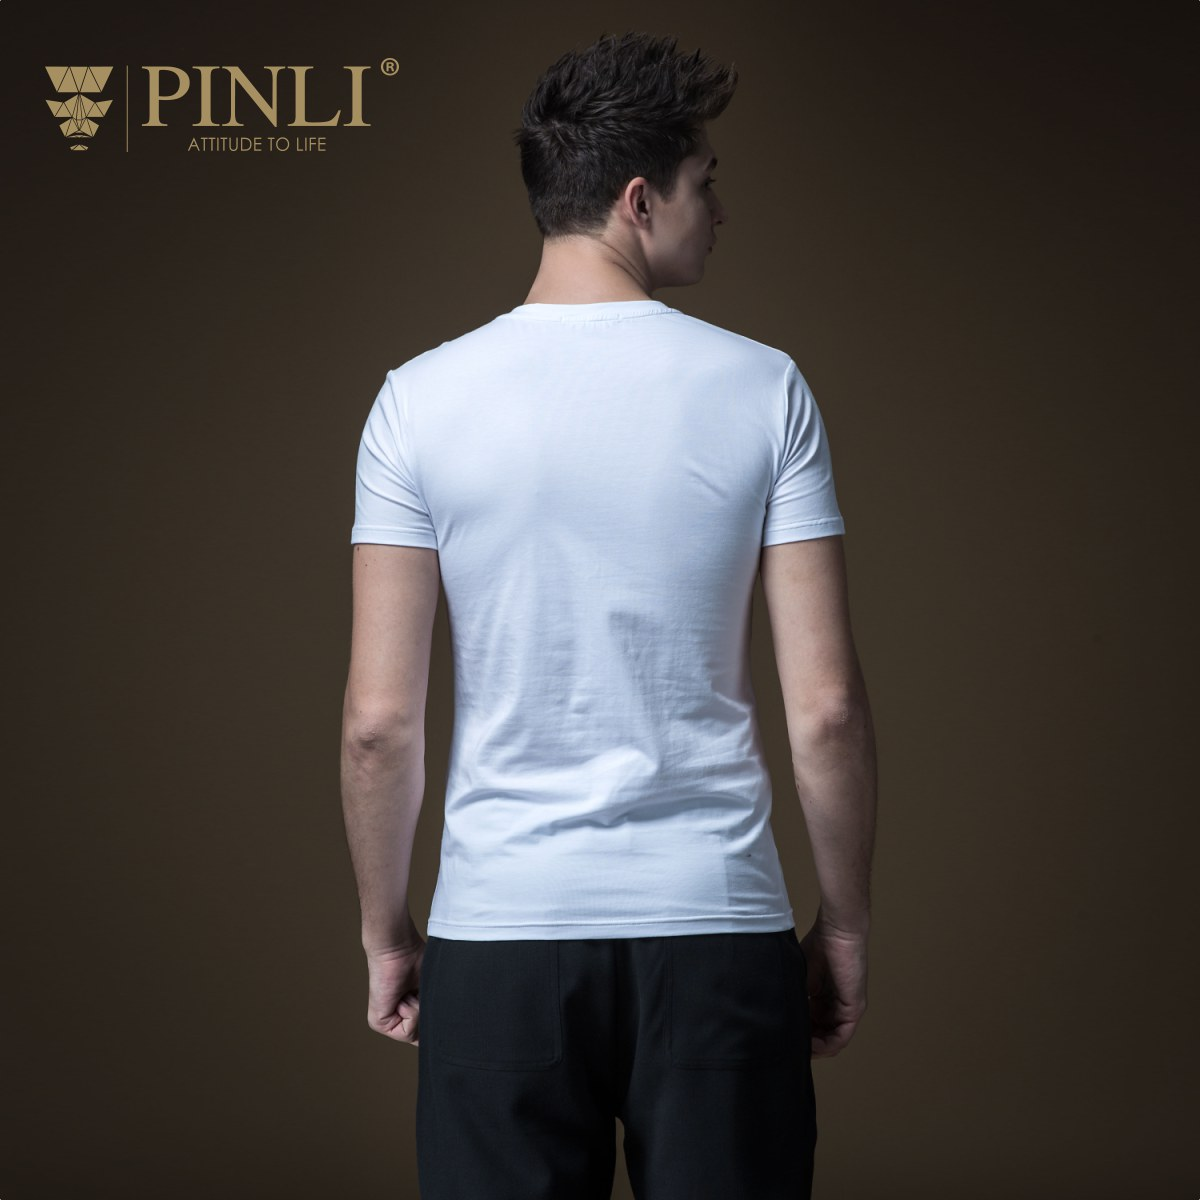 Linkin Park Palace Product Made The New Summer V-neck Splicing Men's Cultivate Morality Short Sleeve T-shirt Coat B192211278 65